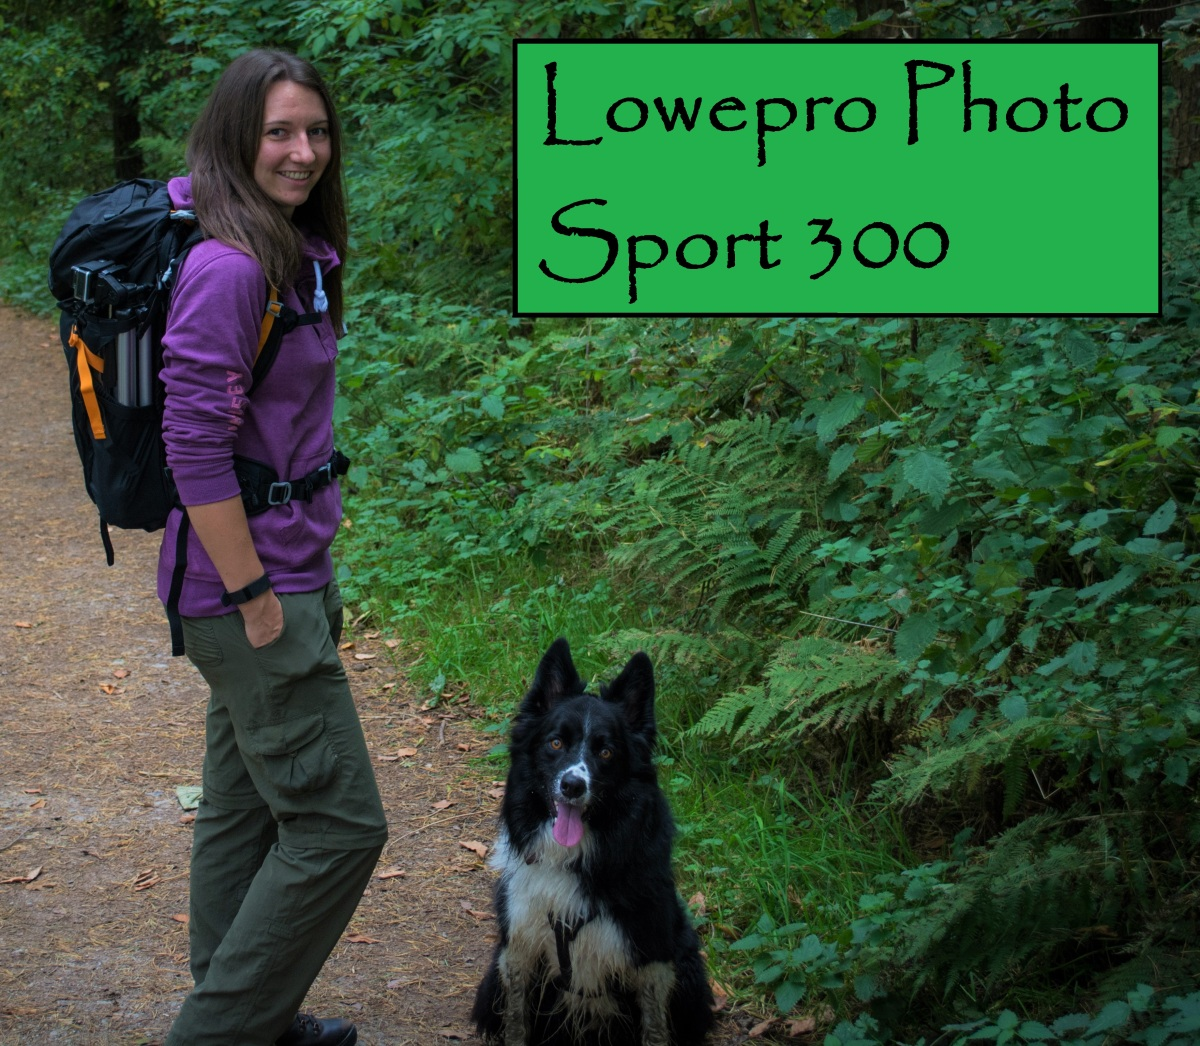 Lowepro Photo Sport 300 camera backpack